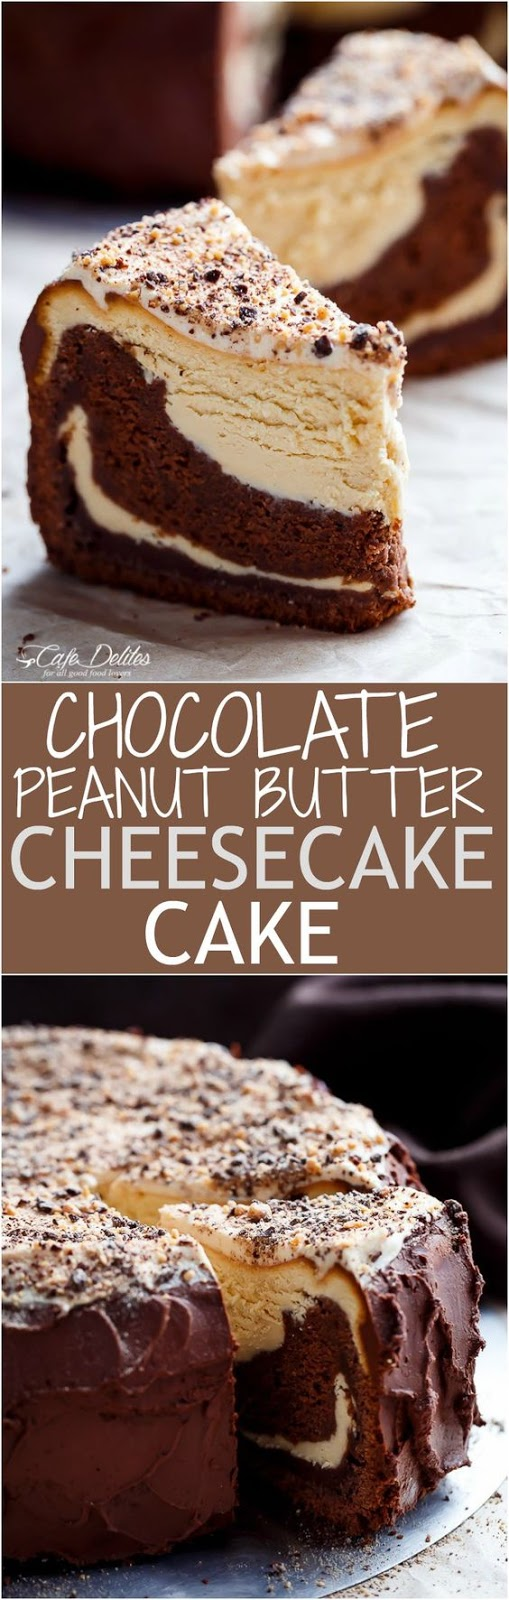 Chocolate Peanut Butter Cheesecake Cake | GIRLS DISH